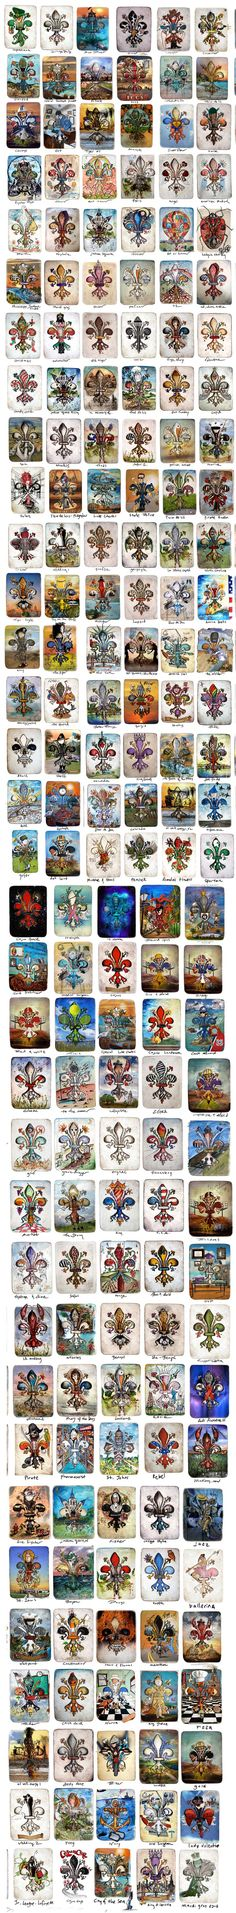 Candice Alexander of Lake Charles, LA, Absolutely love.Fabulous collection of fleur de lis prints by Candice Alexander